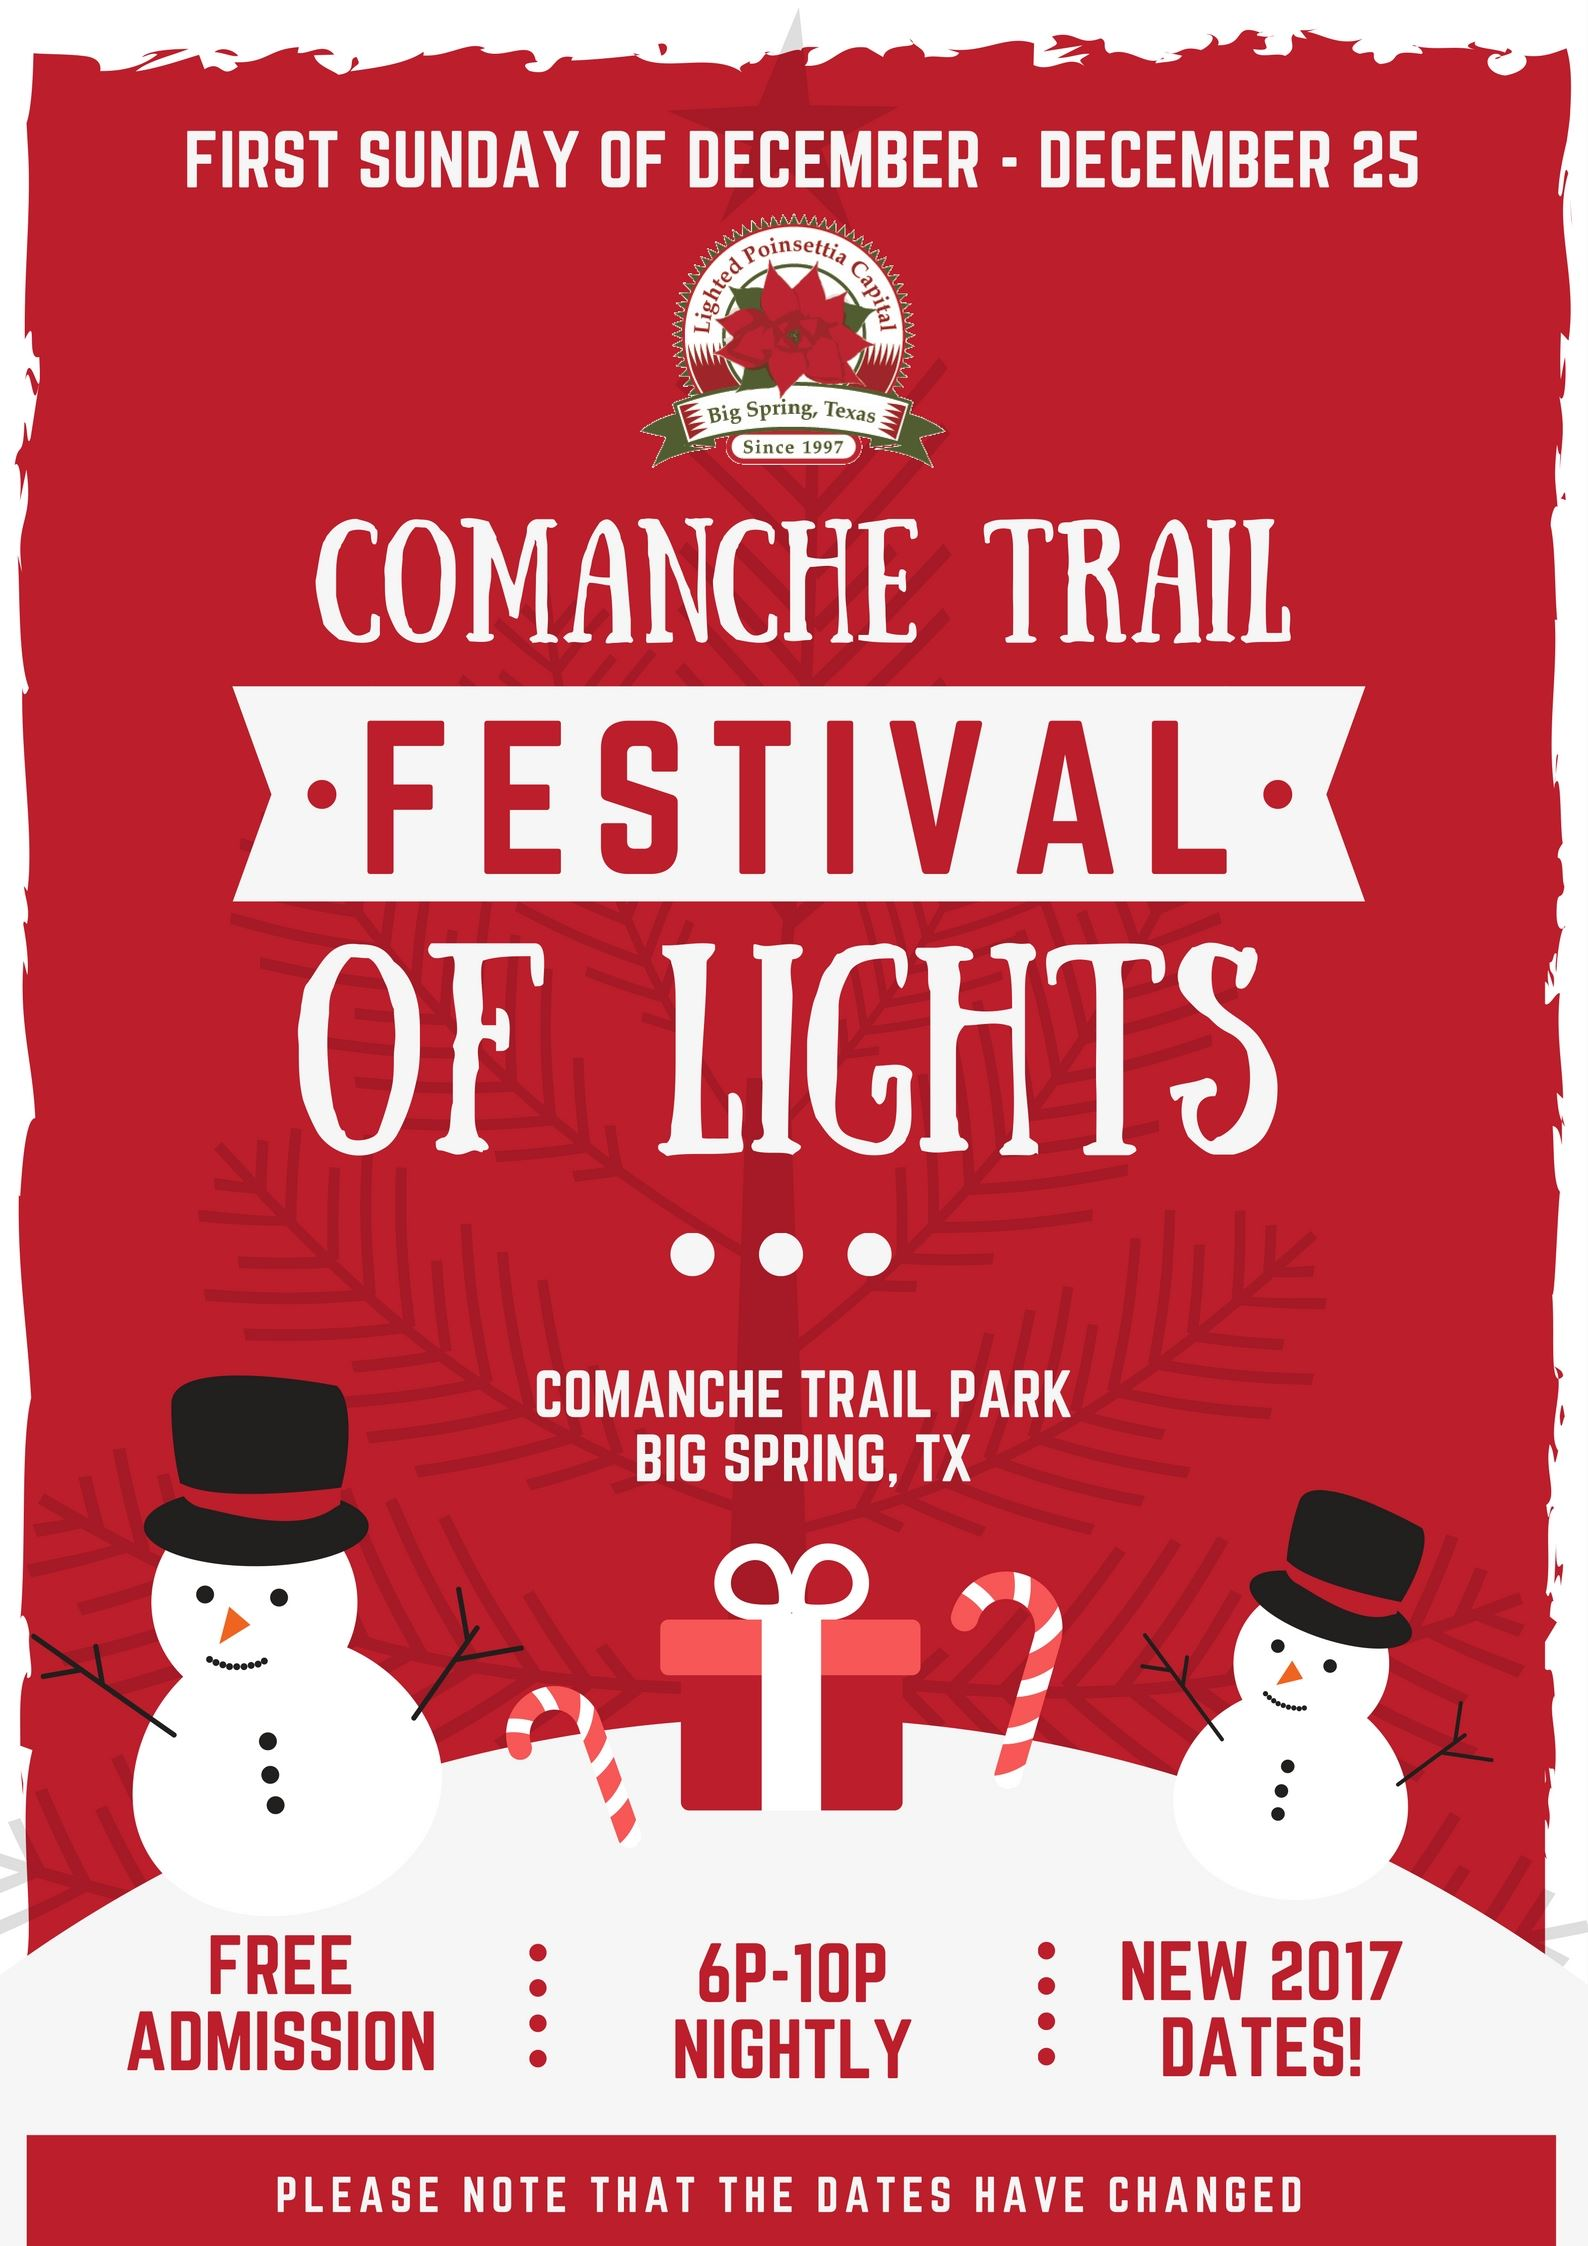 Comanche Trail Festival of Lights (1)